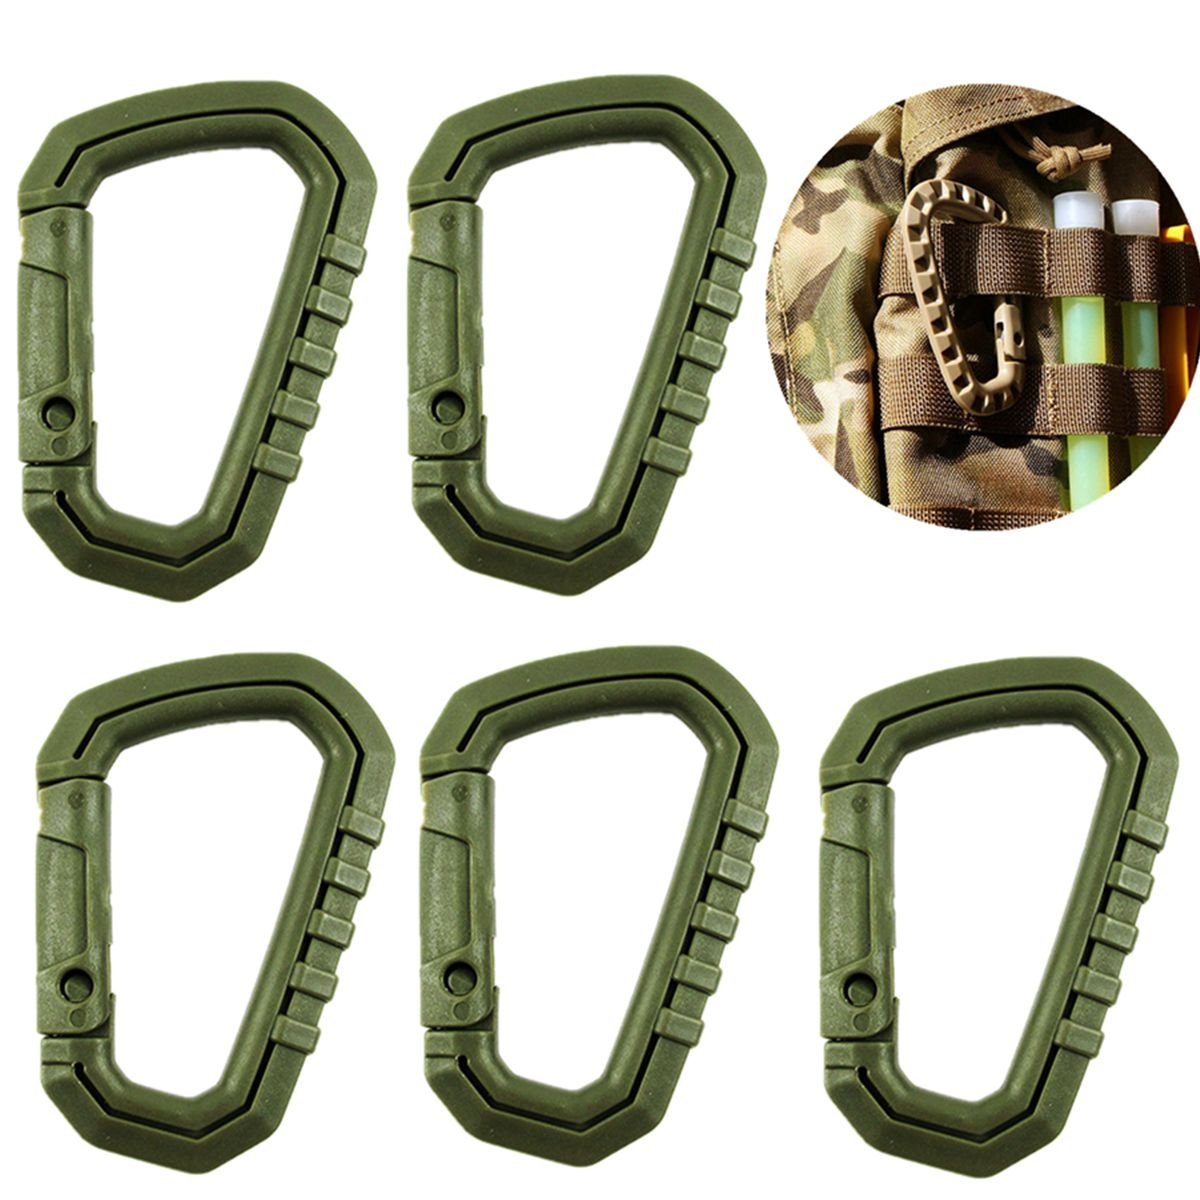 5Pcs Carabiner D-Ring Camp Snap Clip Hook Buckle Keychain Hiking Climbing